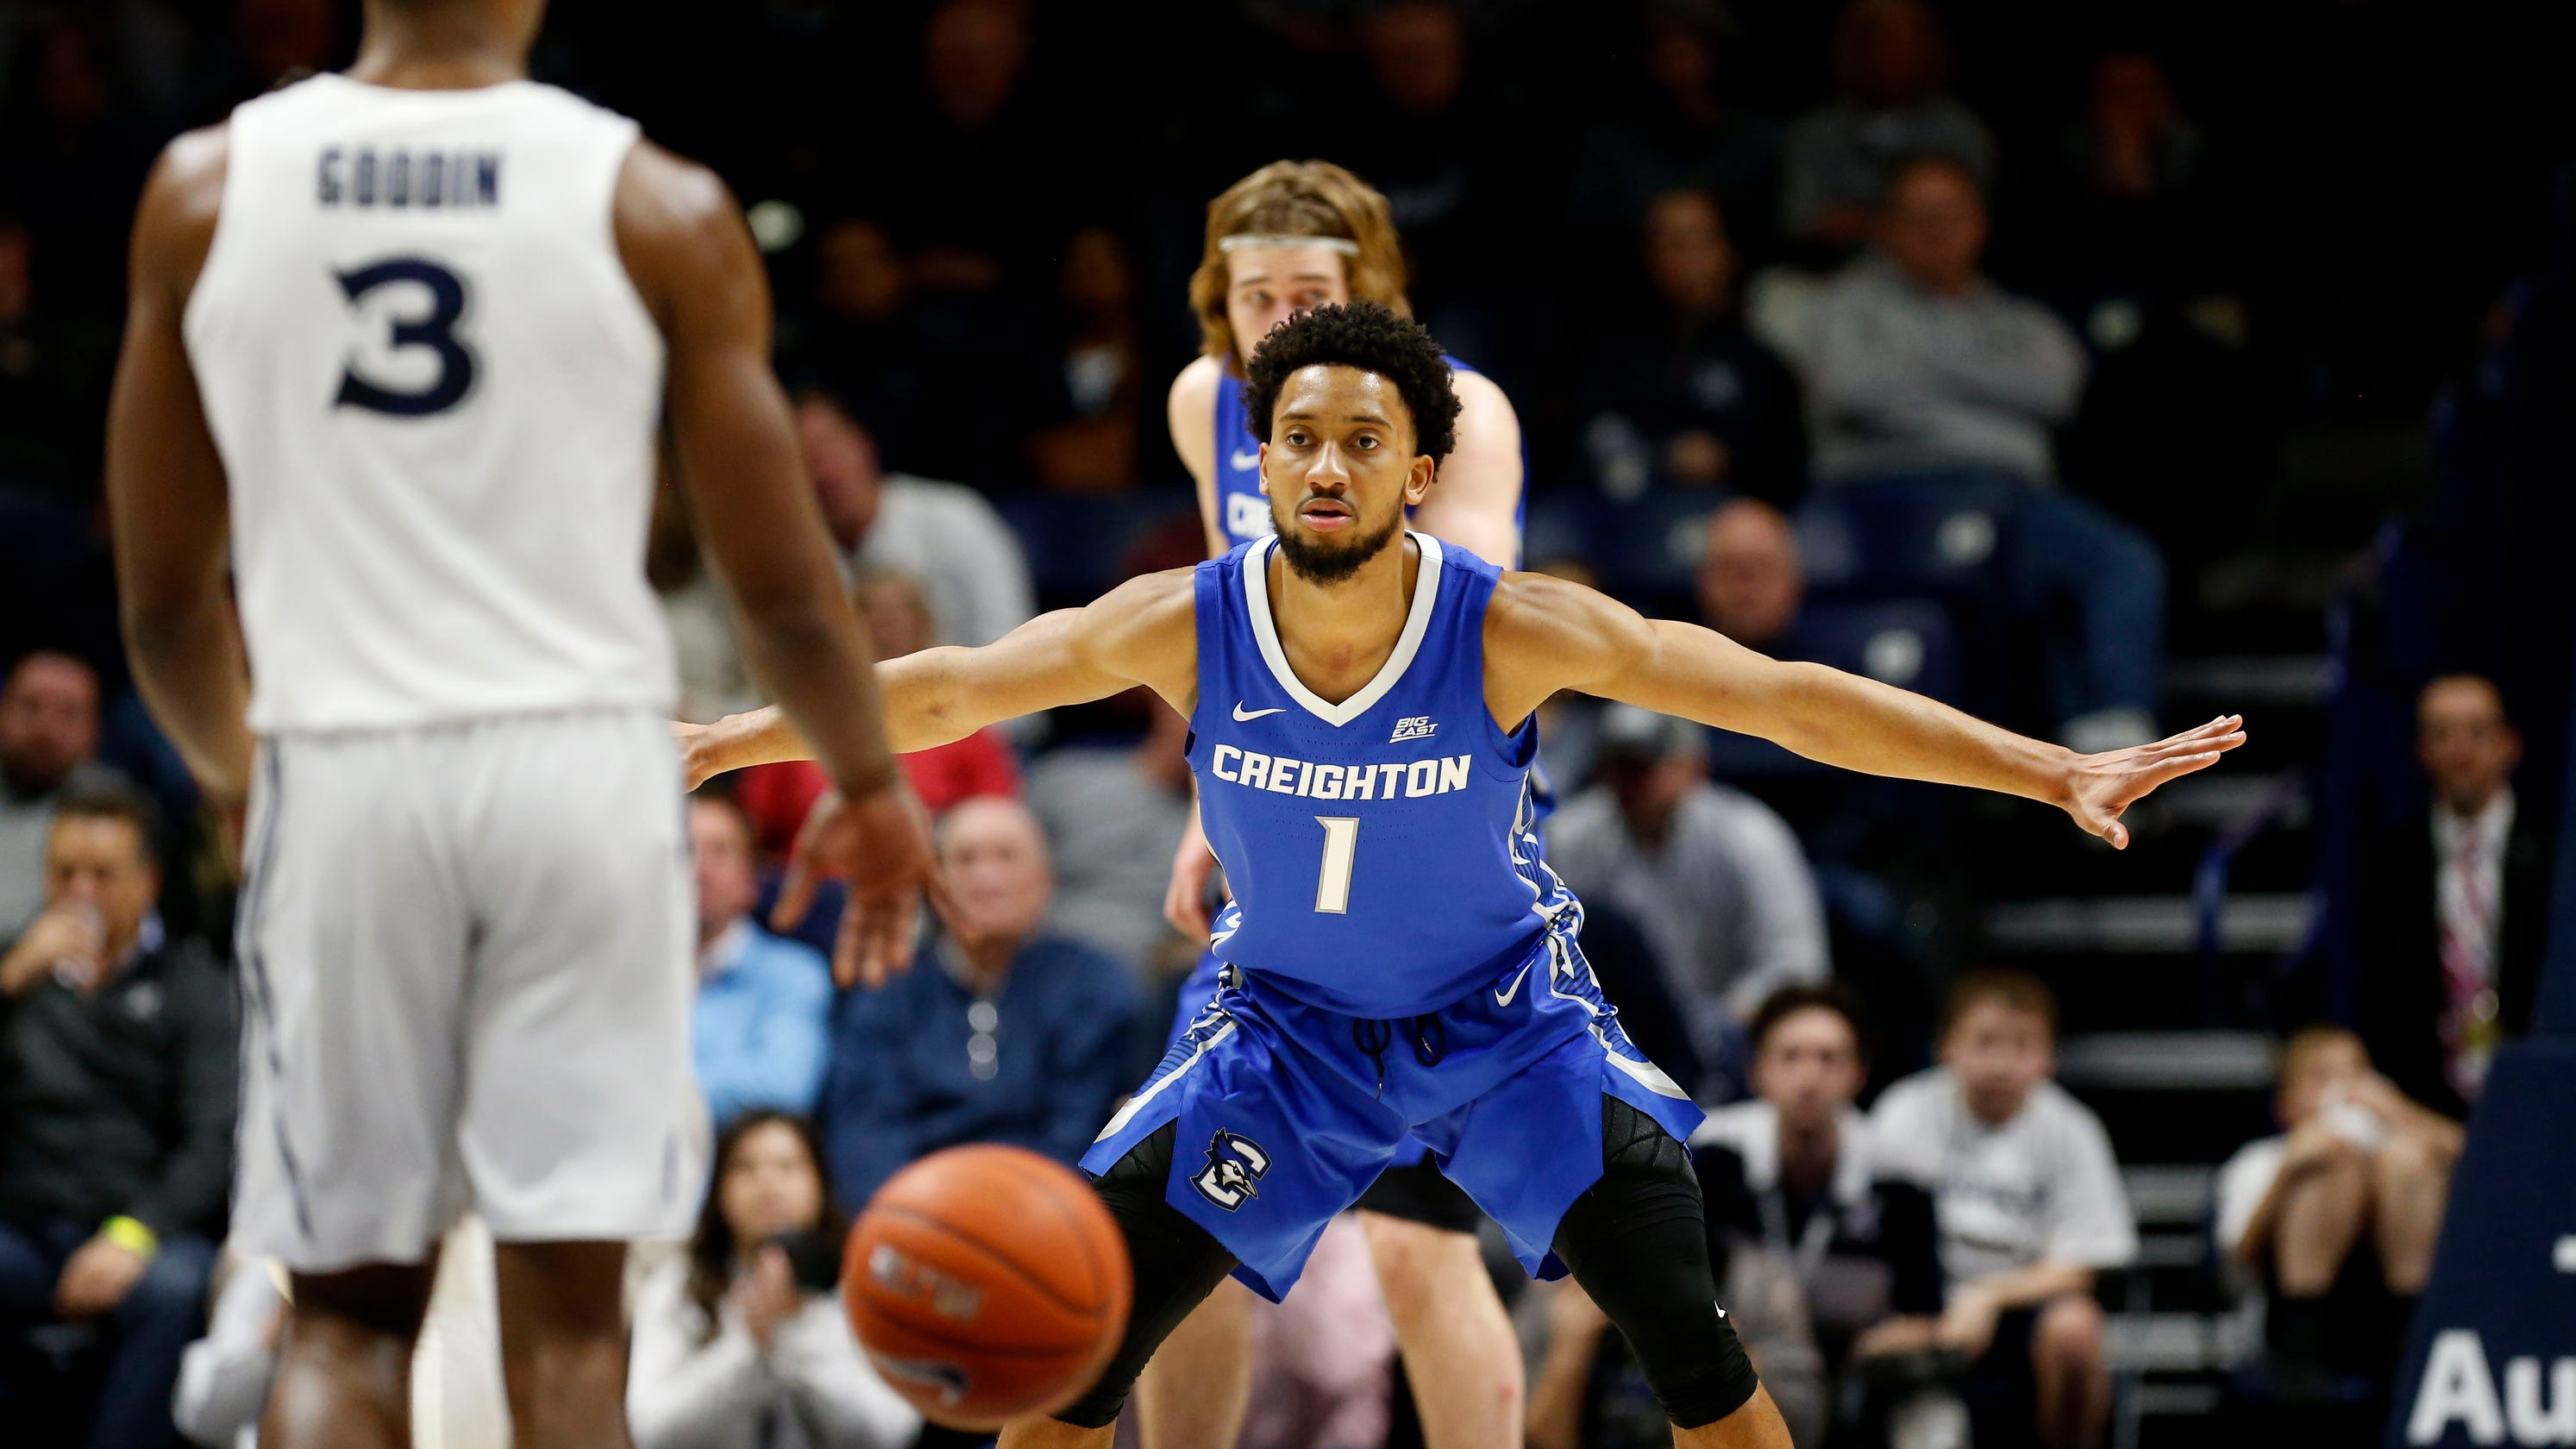 NCAA tournament Bubble Tracker: The Big East could lose big on Selection Sunday